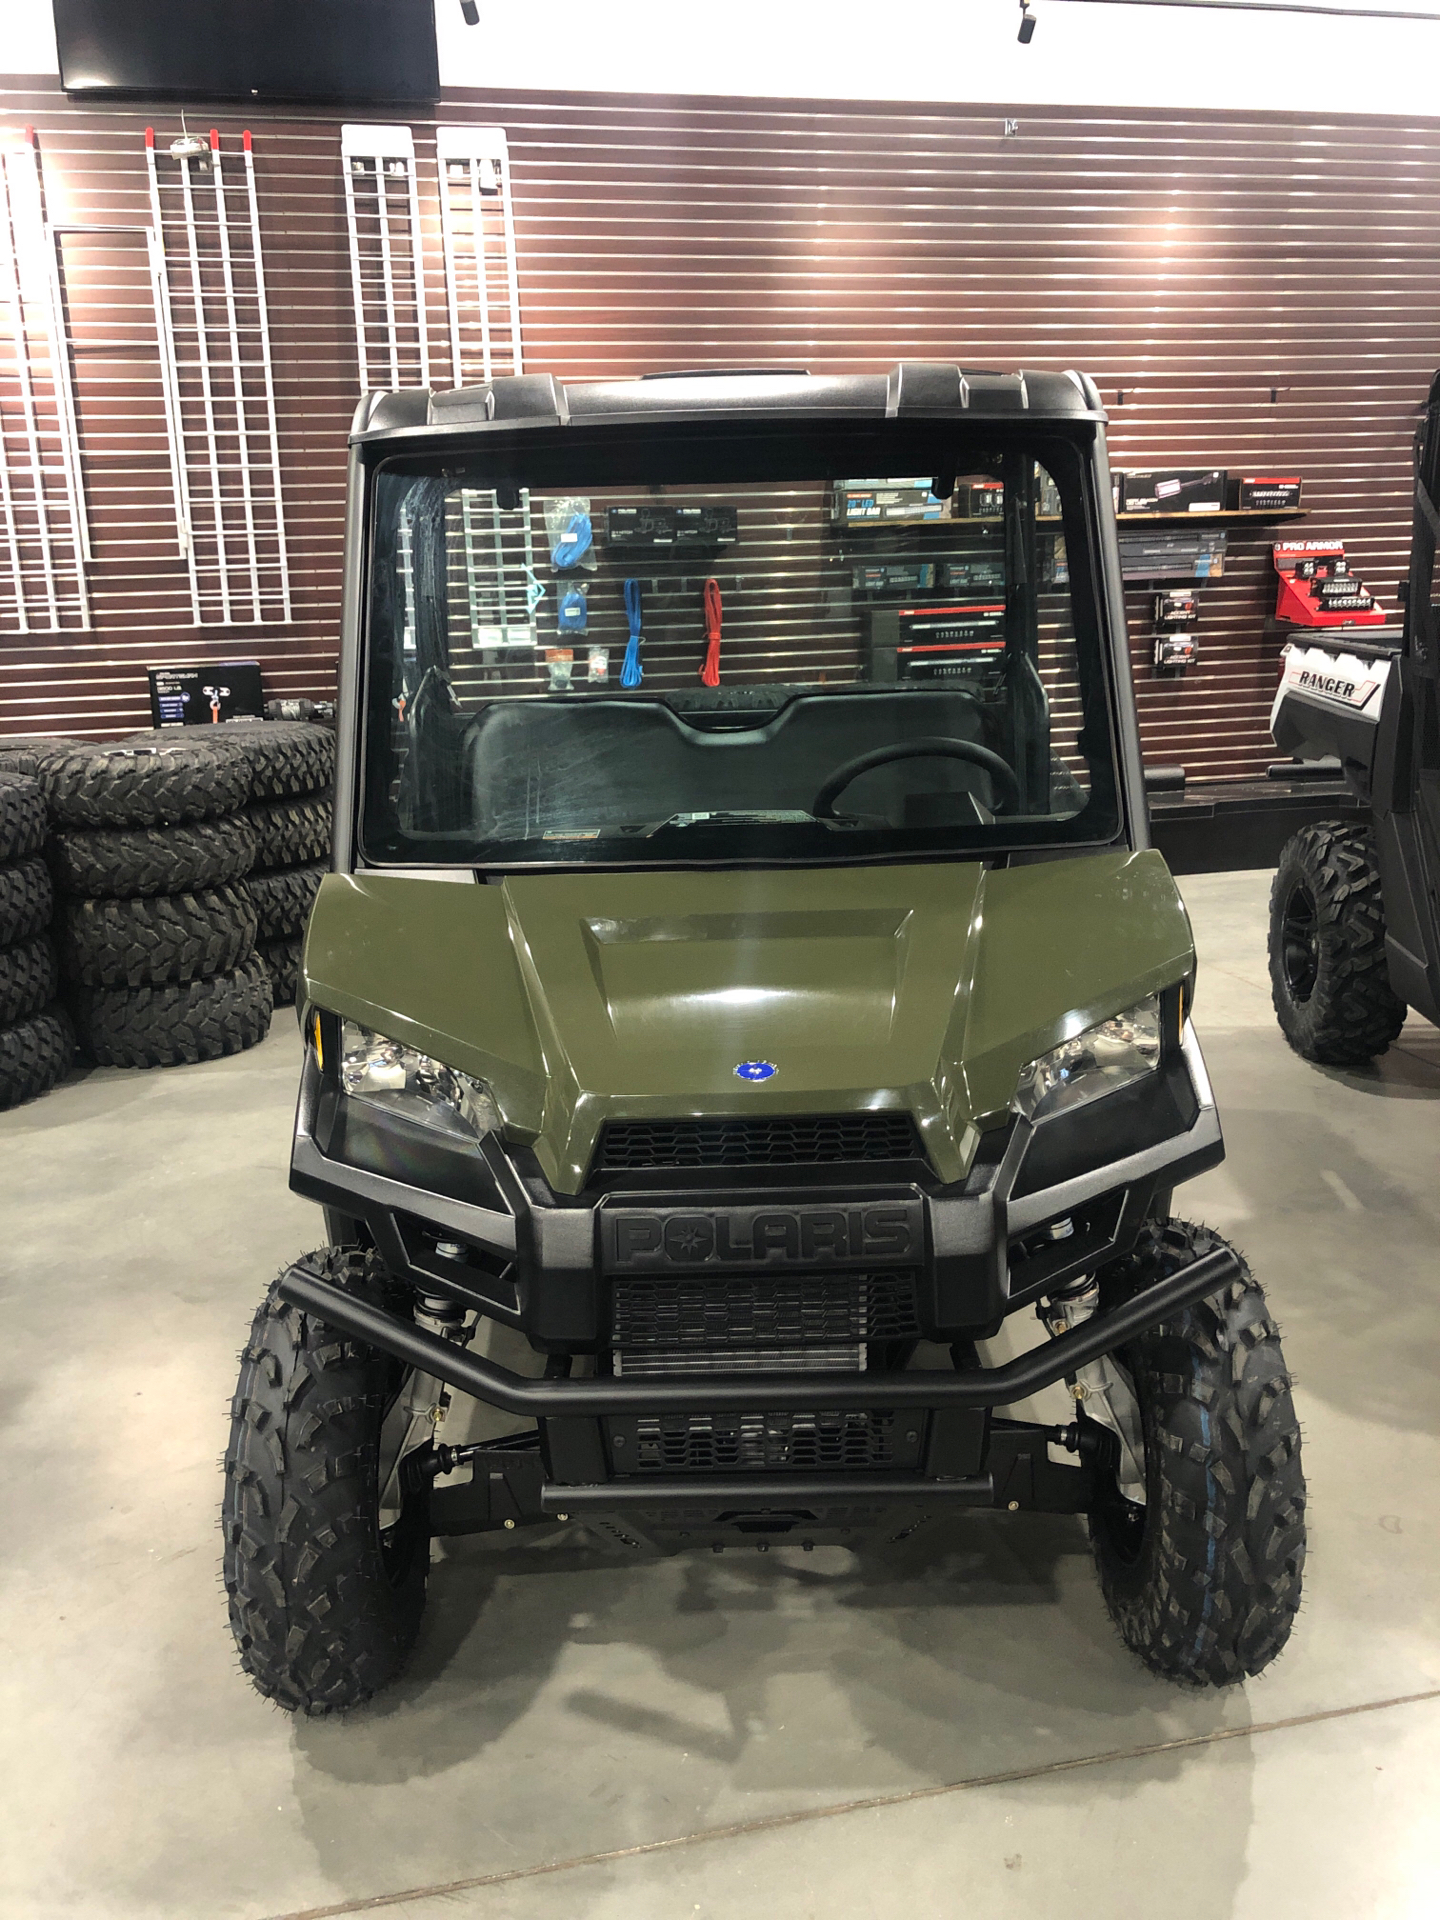 2021 Polaris Ranger 500 in Conway, Arkansas - Photo 2